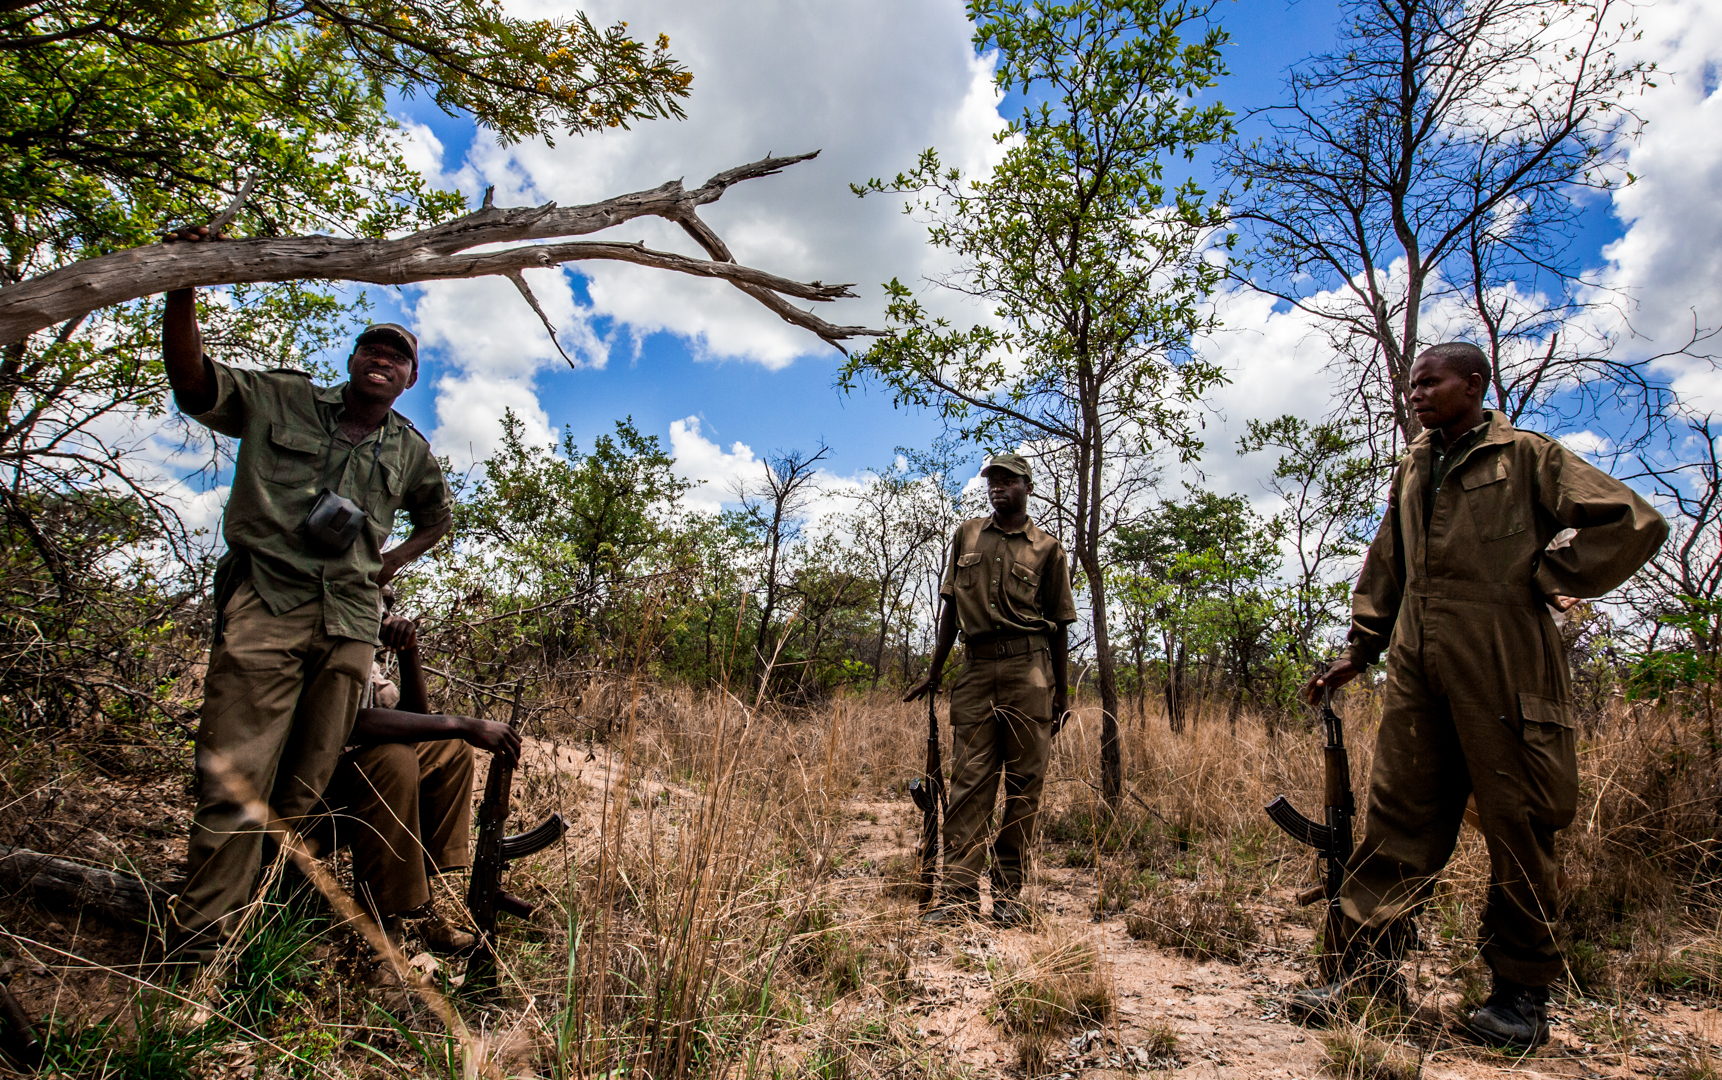 Locals are hired to protect the remaining rhinos from poaching.